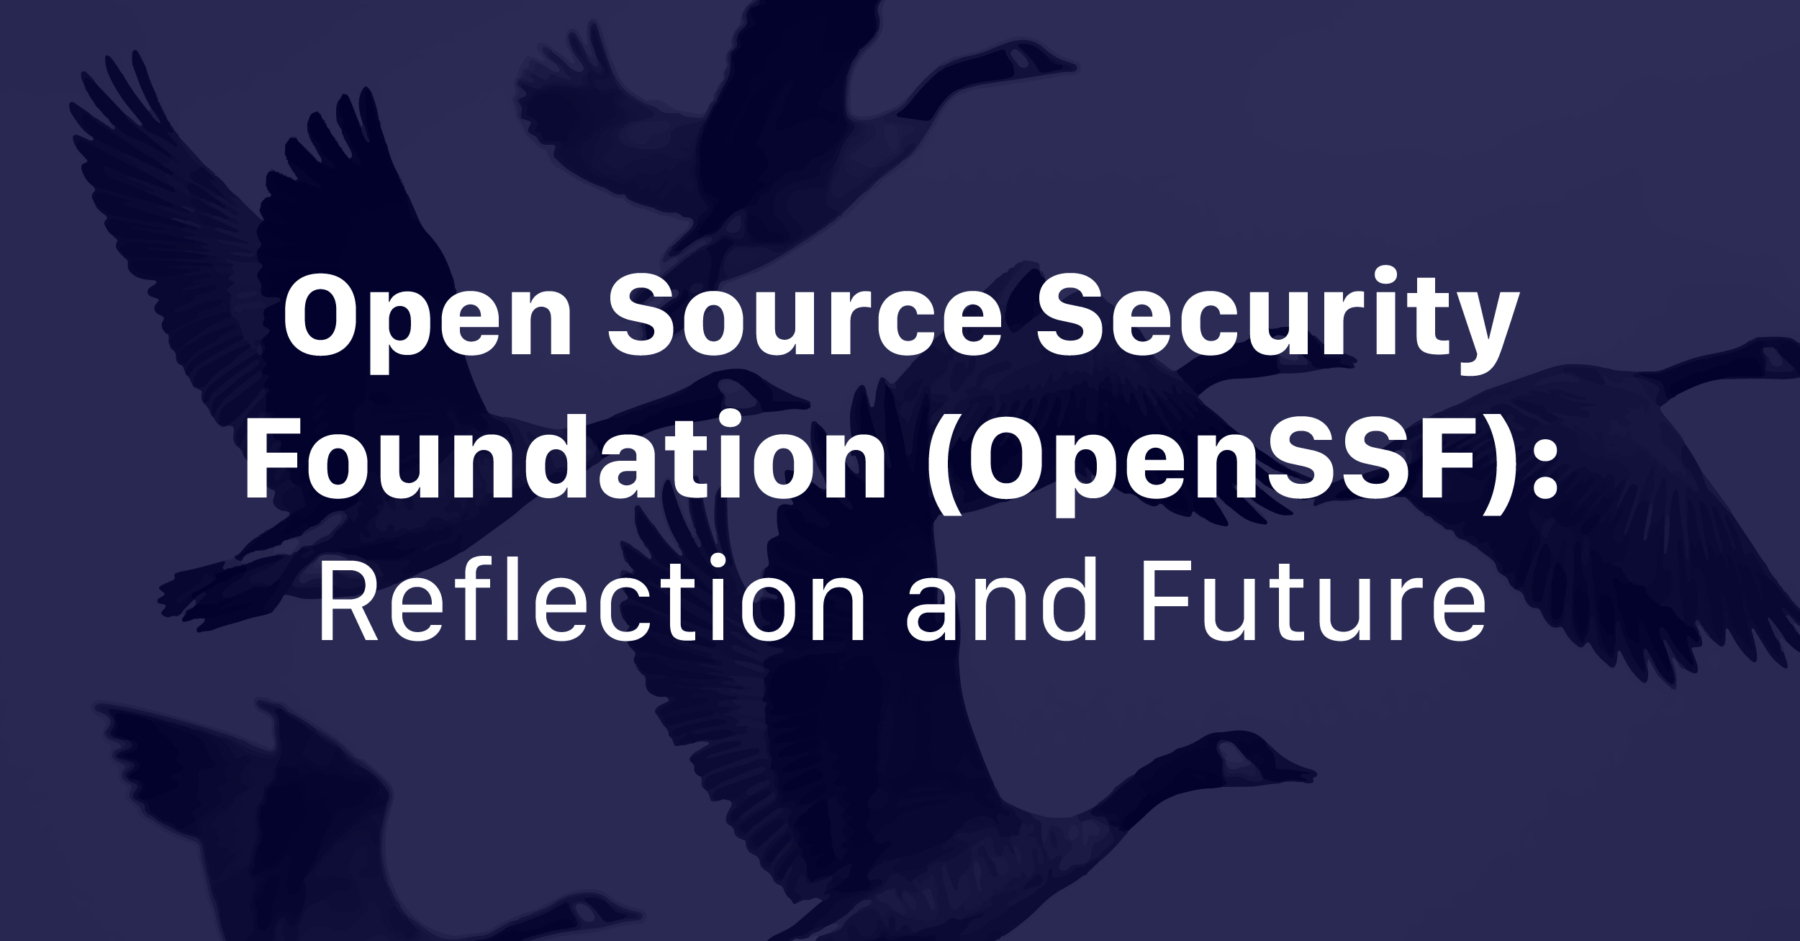 Open Source Security Foundation (OpenSSF): Reflection and Future - Linux Foundation